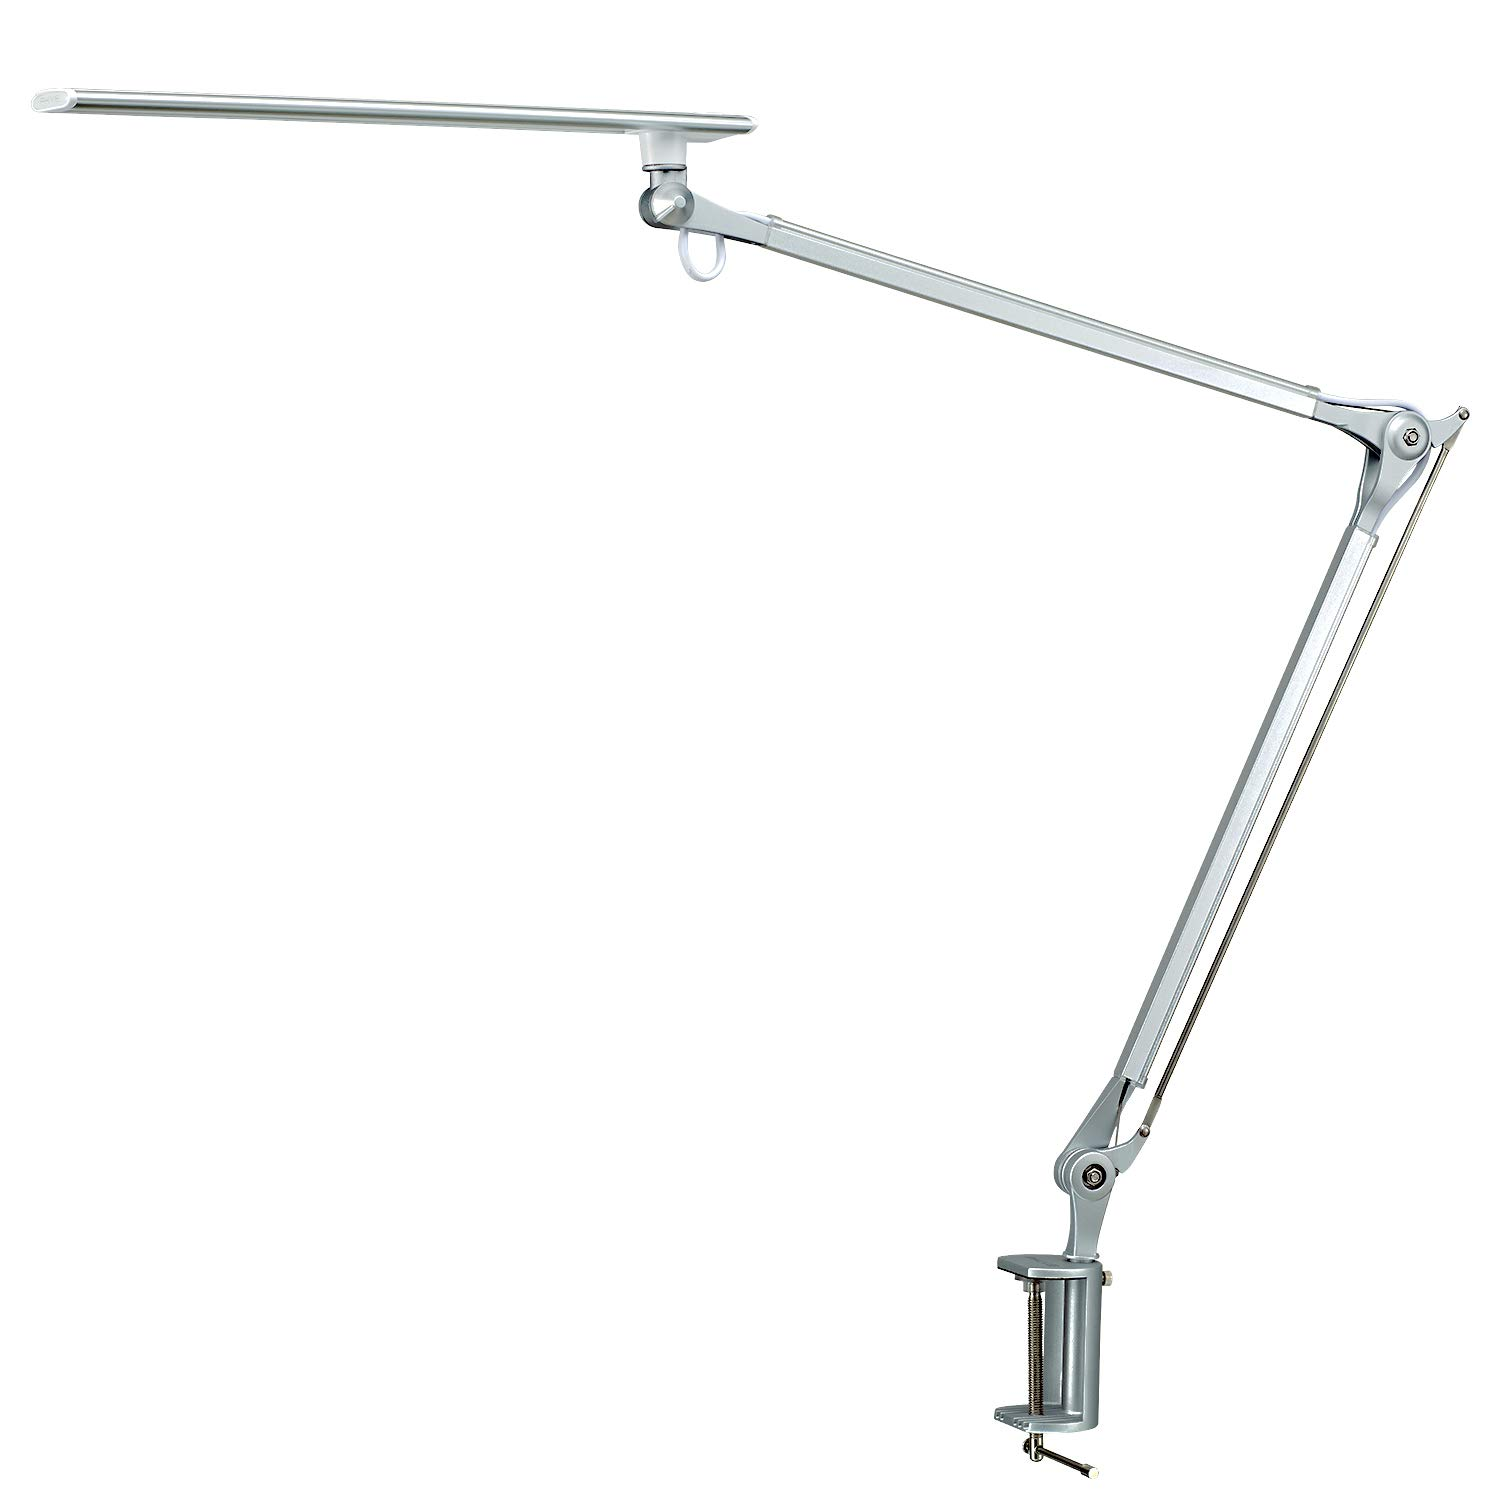 Phive CL-1 LED Architect Desk Lamp/Clamp Lamp, Metal Swing Arm Dimmable Task Lamp (Touch Control, Eye-Care Technology, Memory Function, Highly Adjustable Office/Work Light) Silver SYNCHKG118451